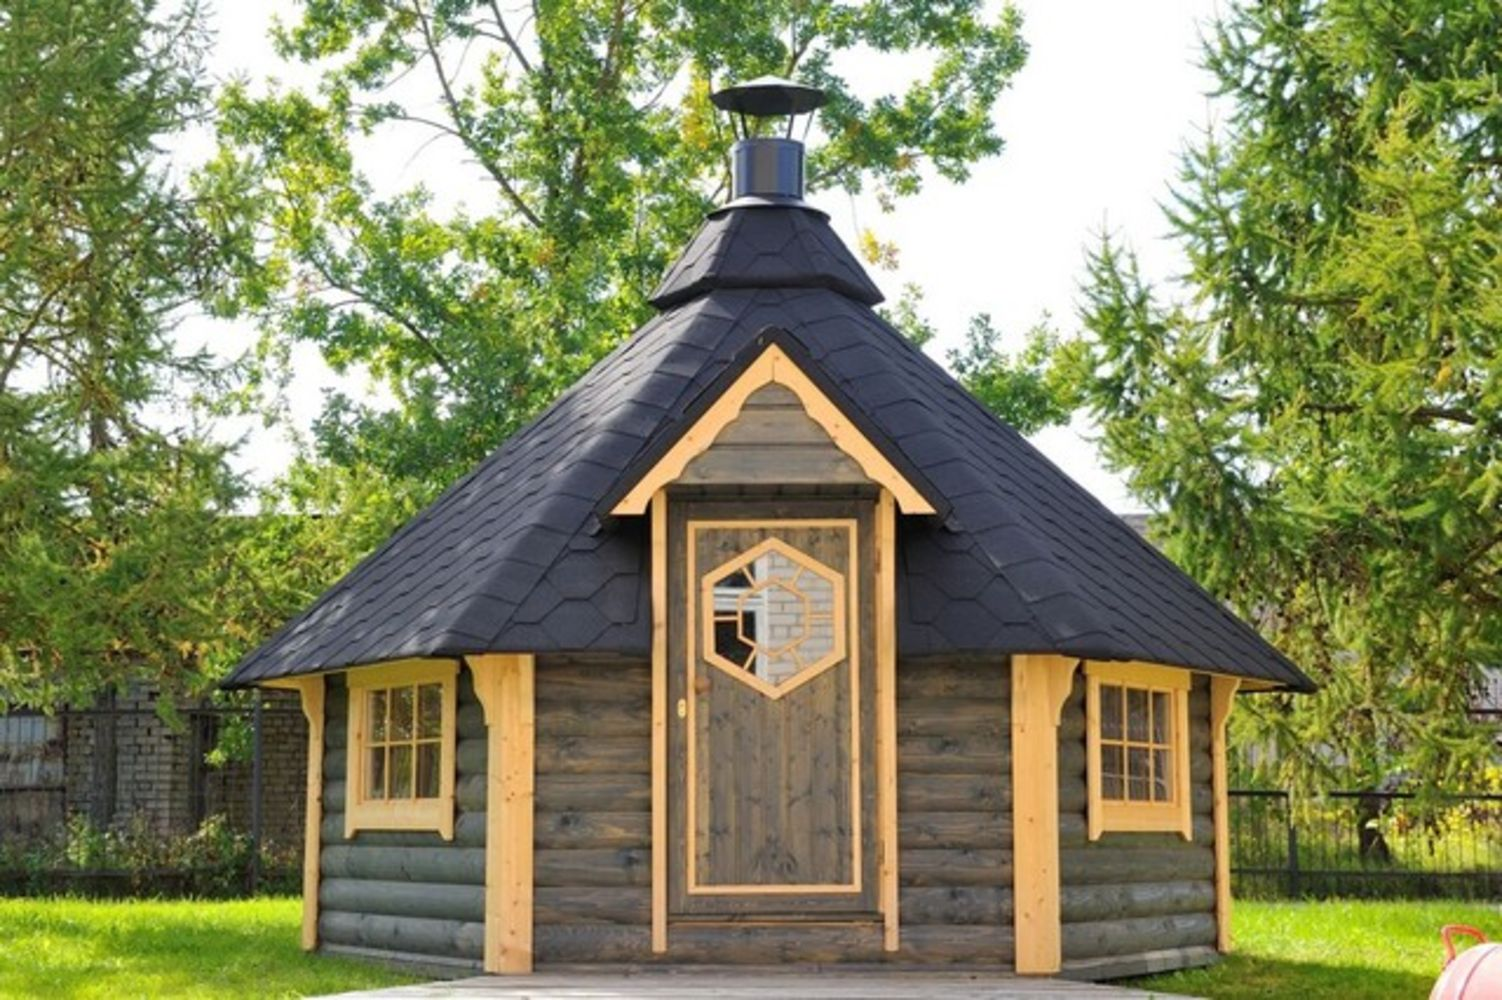 Scandinavian-Style Garden Buildings & More: Get Set for Summer with Cabins, Cubes, Pods, Barrels, Saunas, Hot Tubs & Garden Furniture